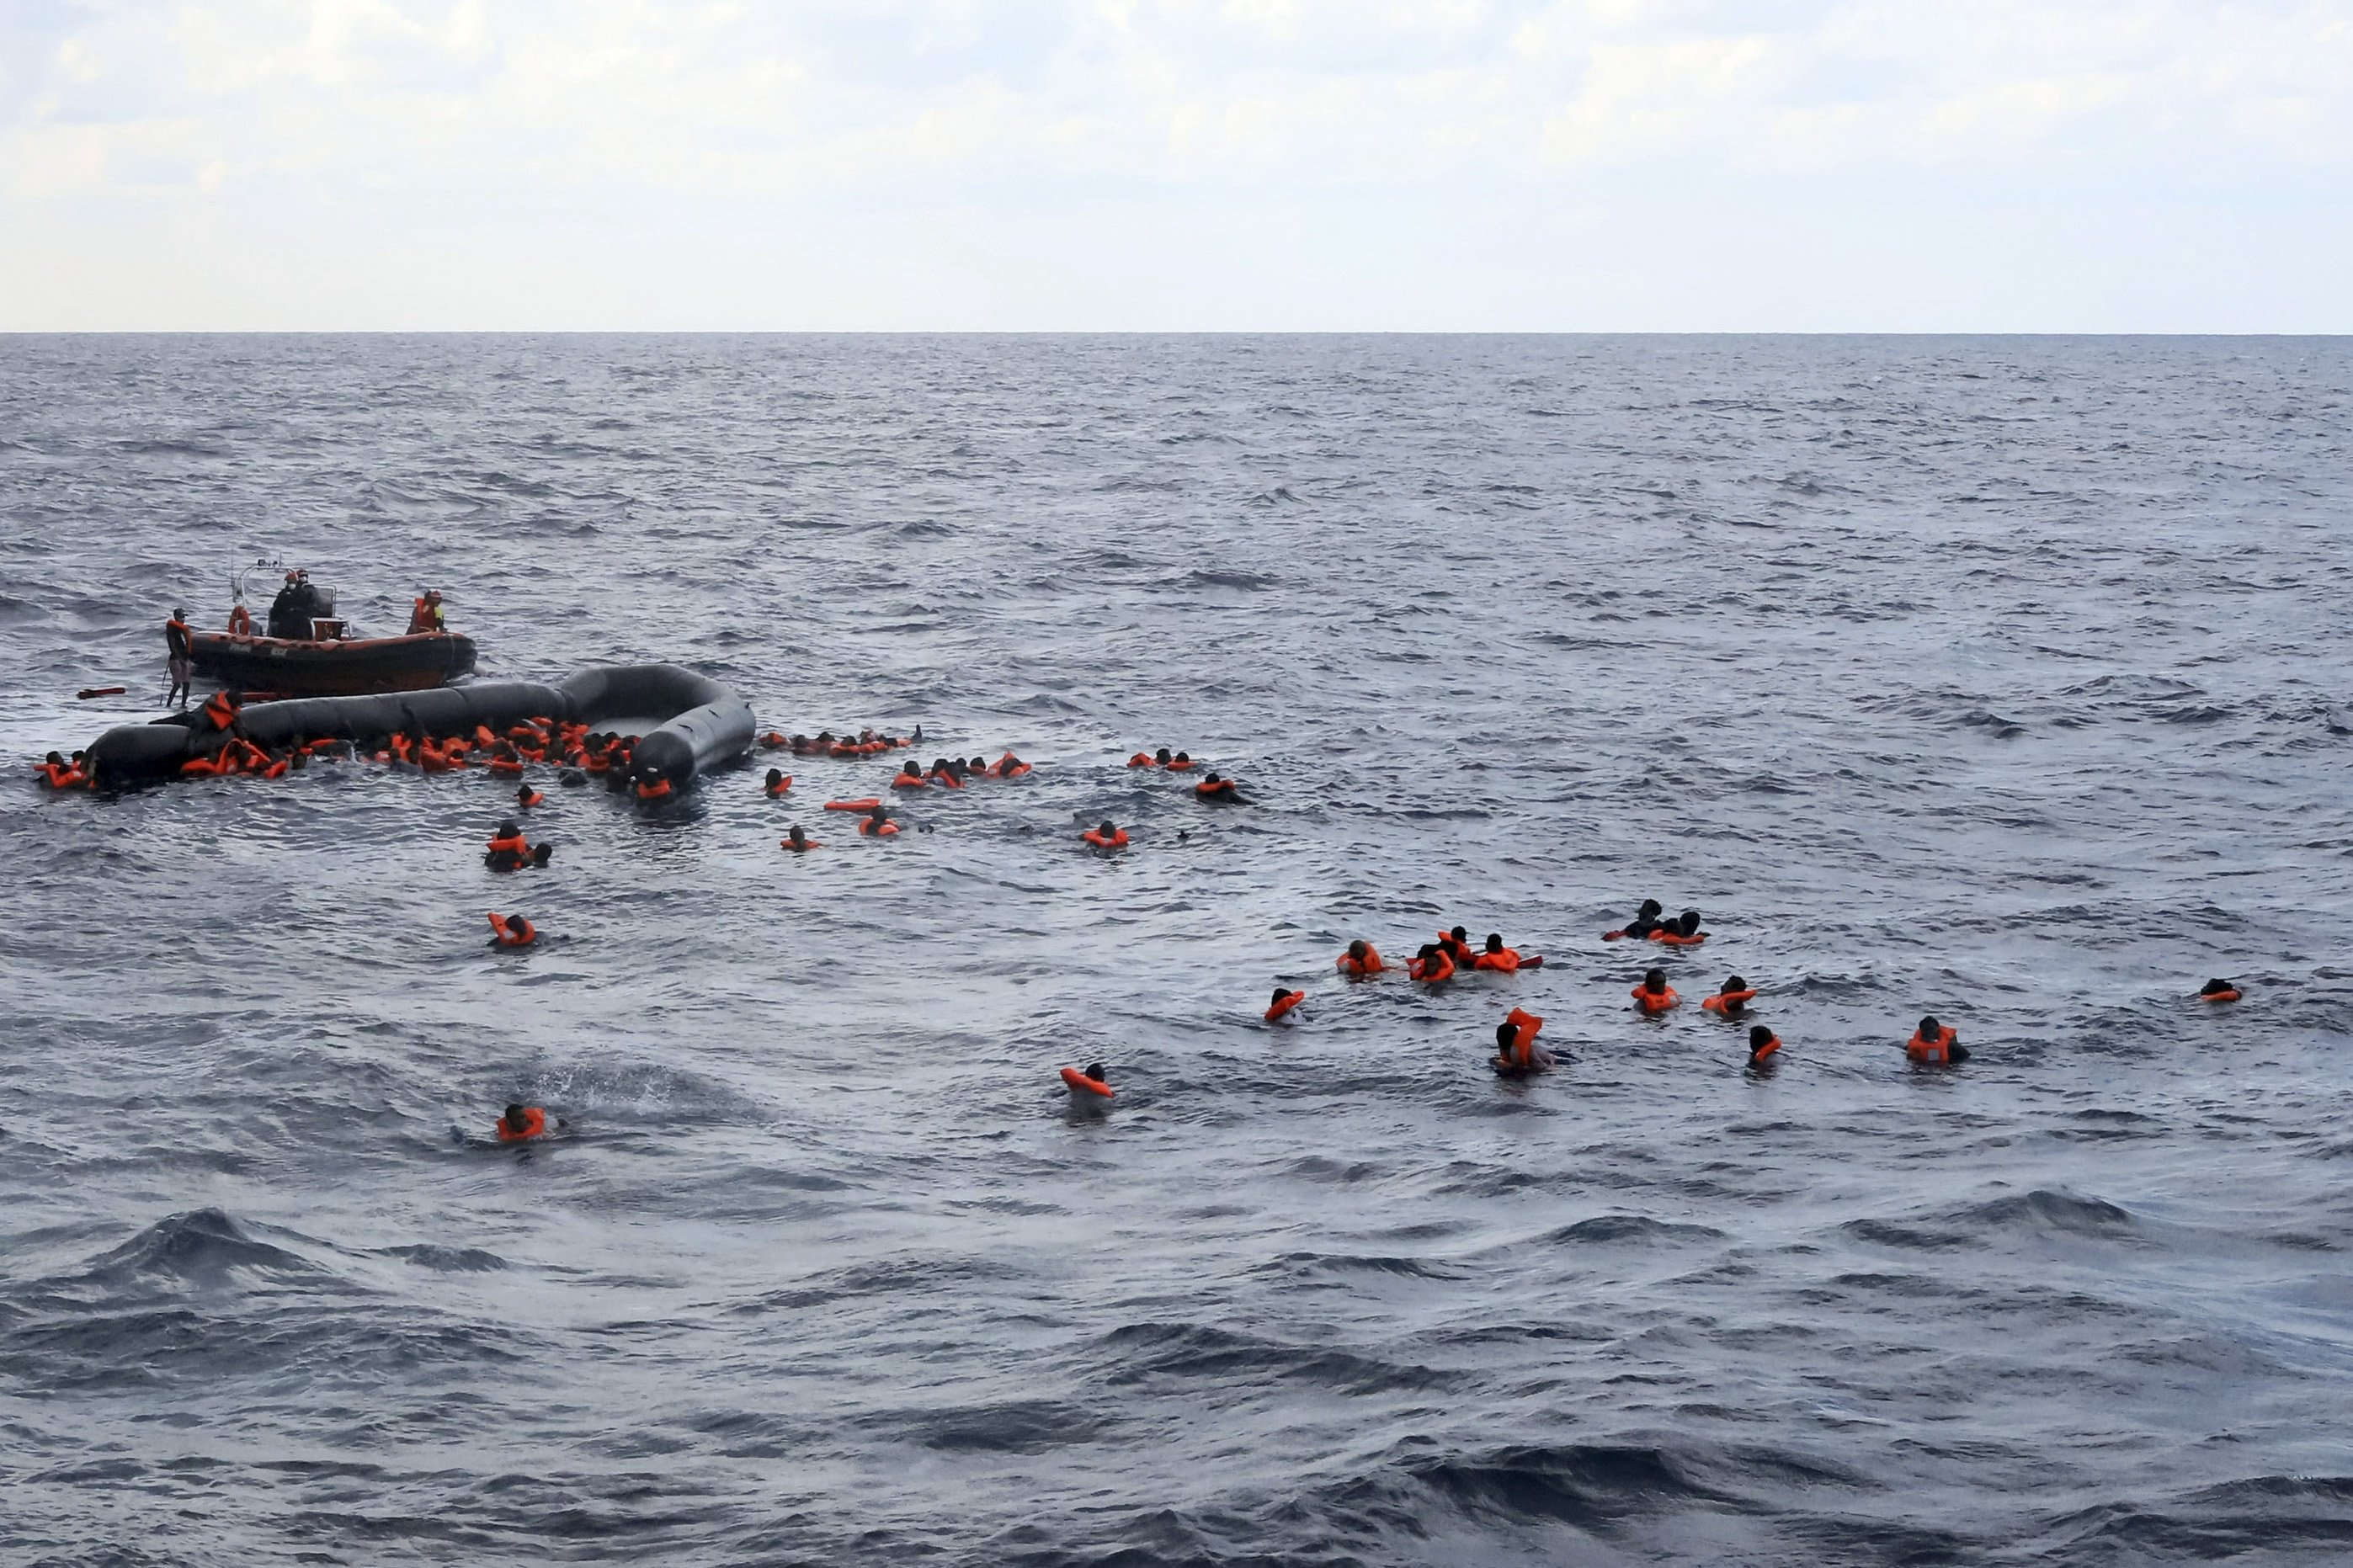 At least 41 migrants drown after boat capsizes in Mediterranean